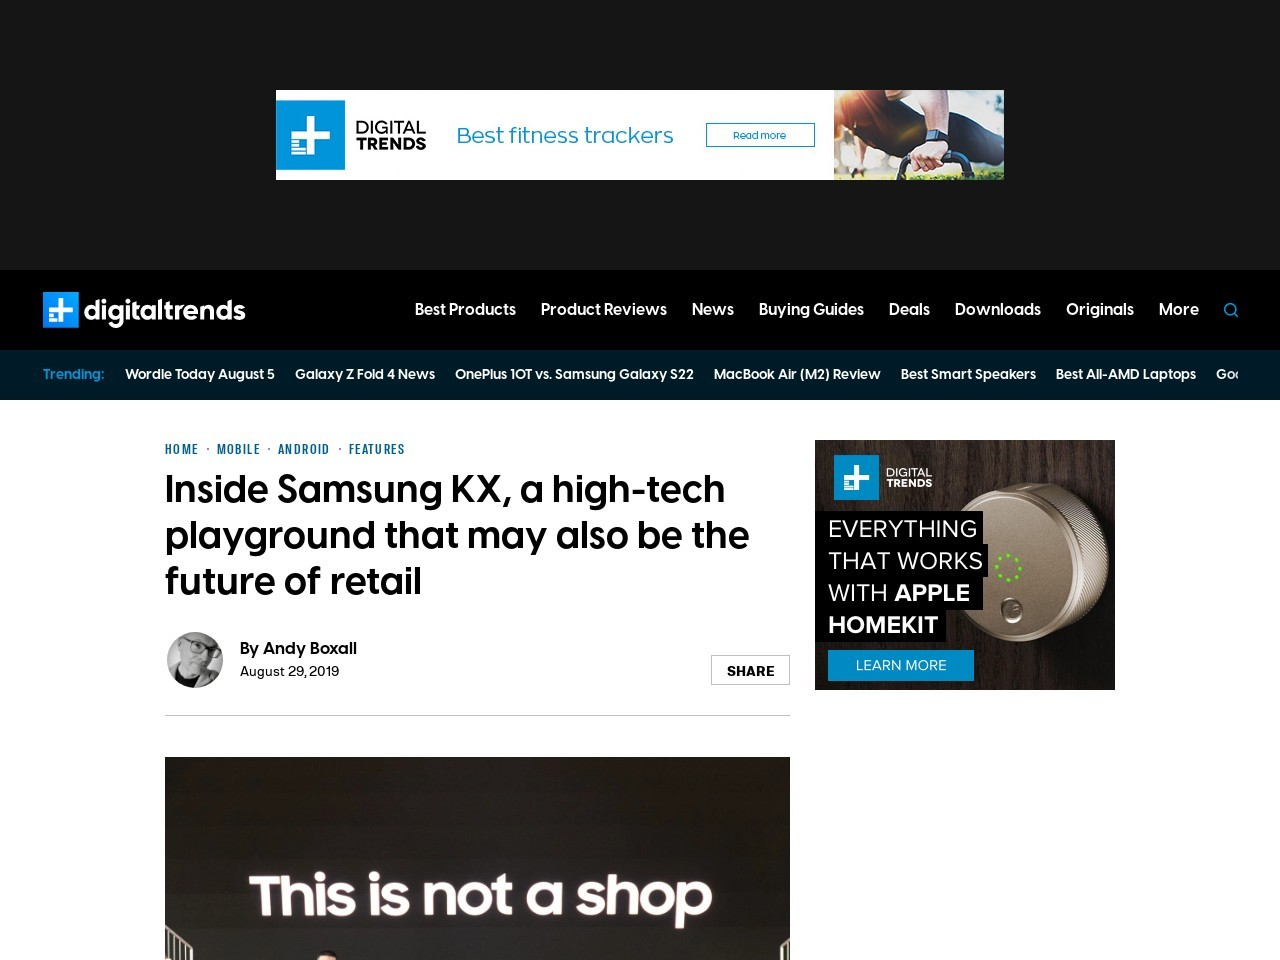 Inside Samsung KX, a Tech Playground That May be the Future of Retail